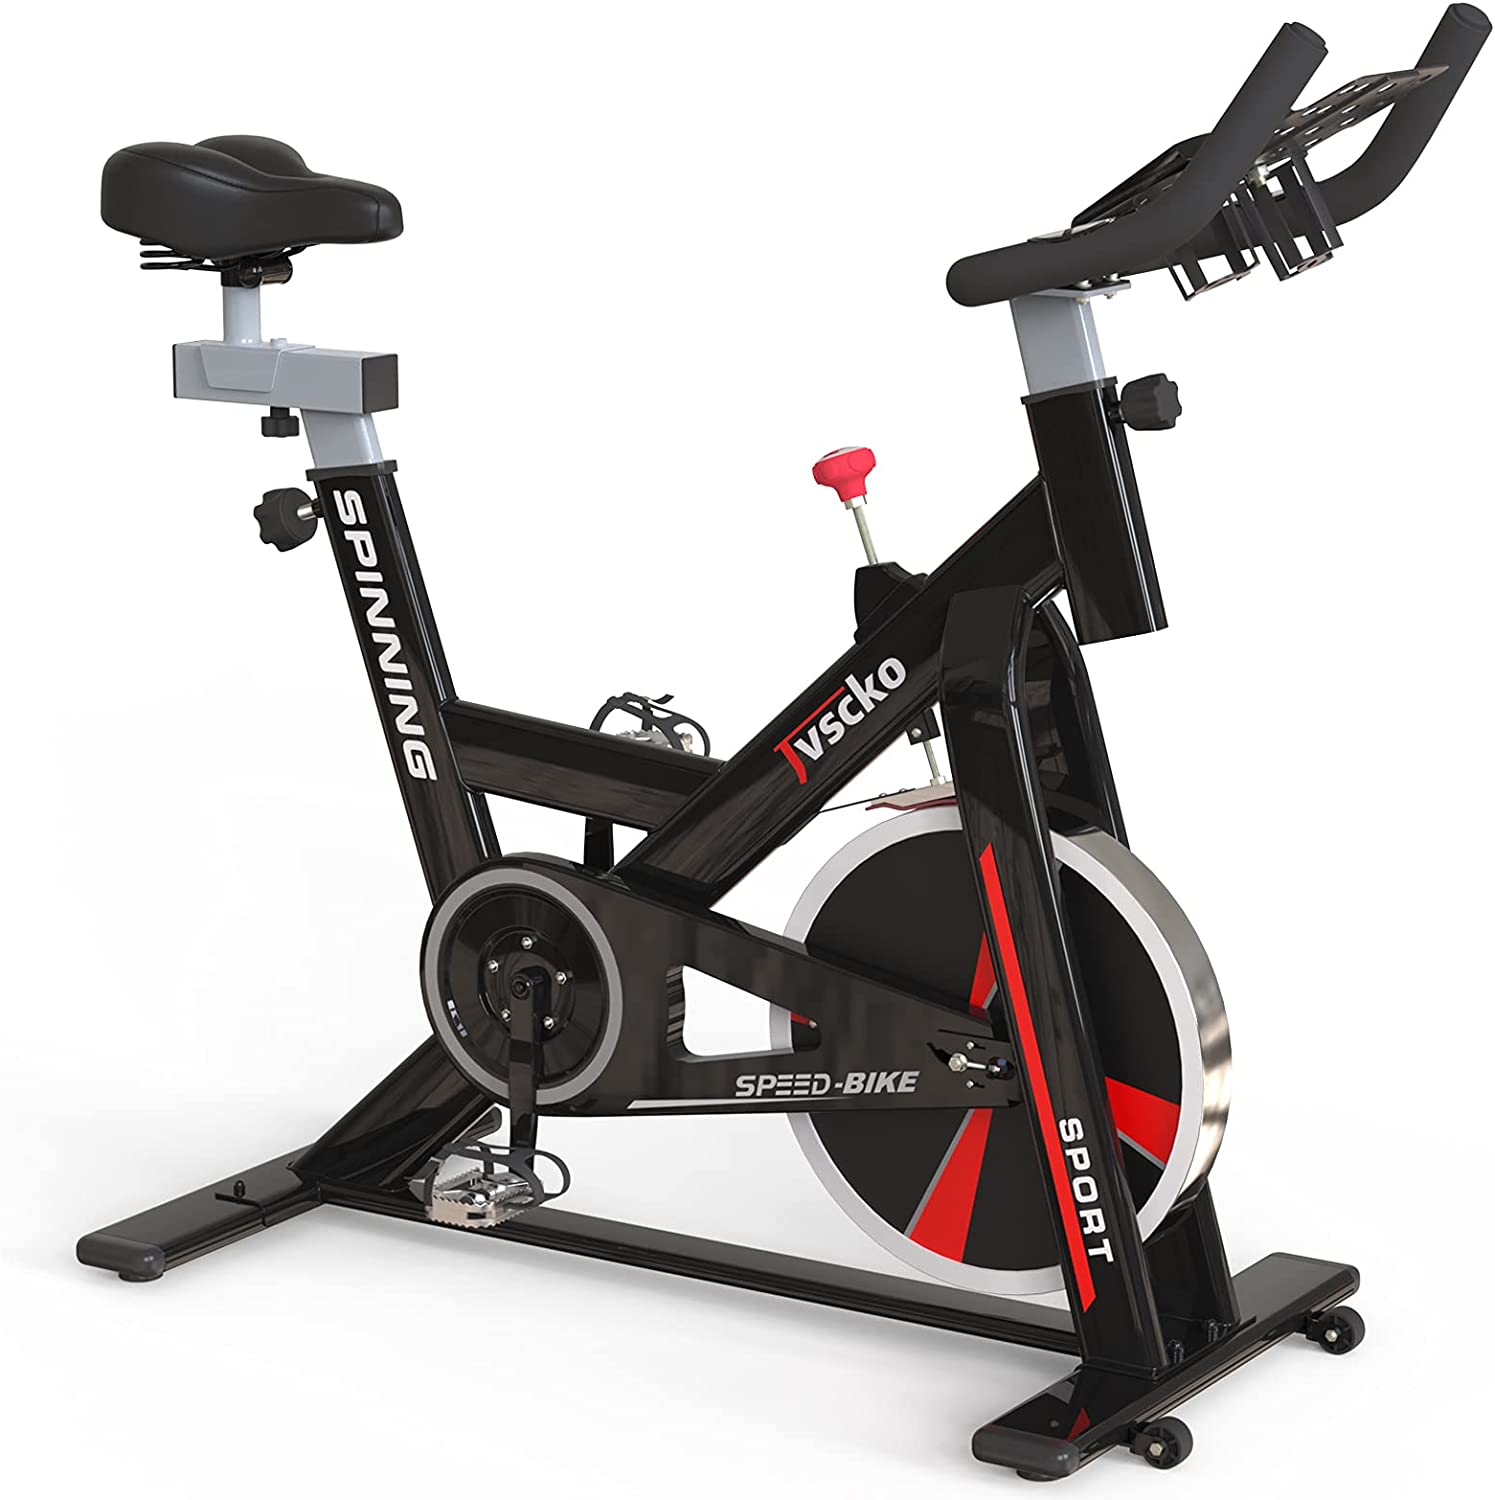 Exercise Bike Stationary Indoor Fitness Bike 440lbs Weight Capacity for Home Gym with Silent Belt Drive, Ipad Holder,Lcd Display